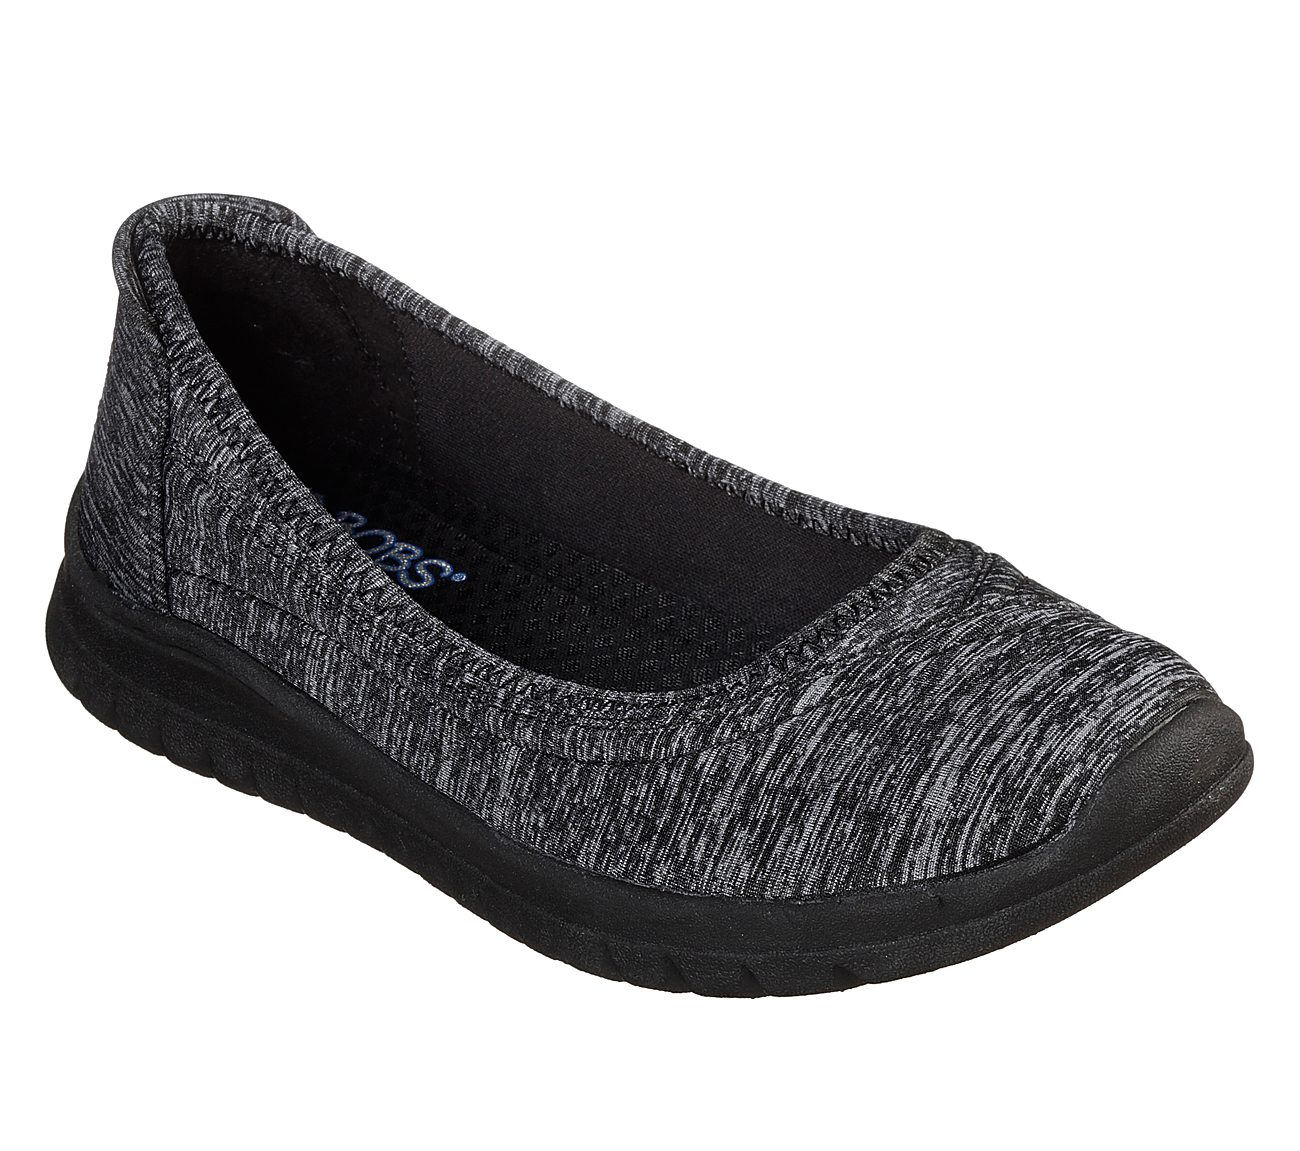 c88c584b874f Buy SKECHERS BOBS Pureflex 3 - Ride Around BOBS Shoes only  32.00